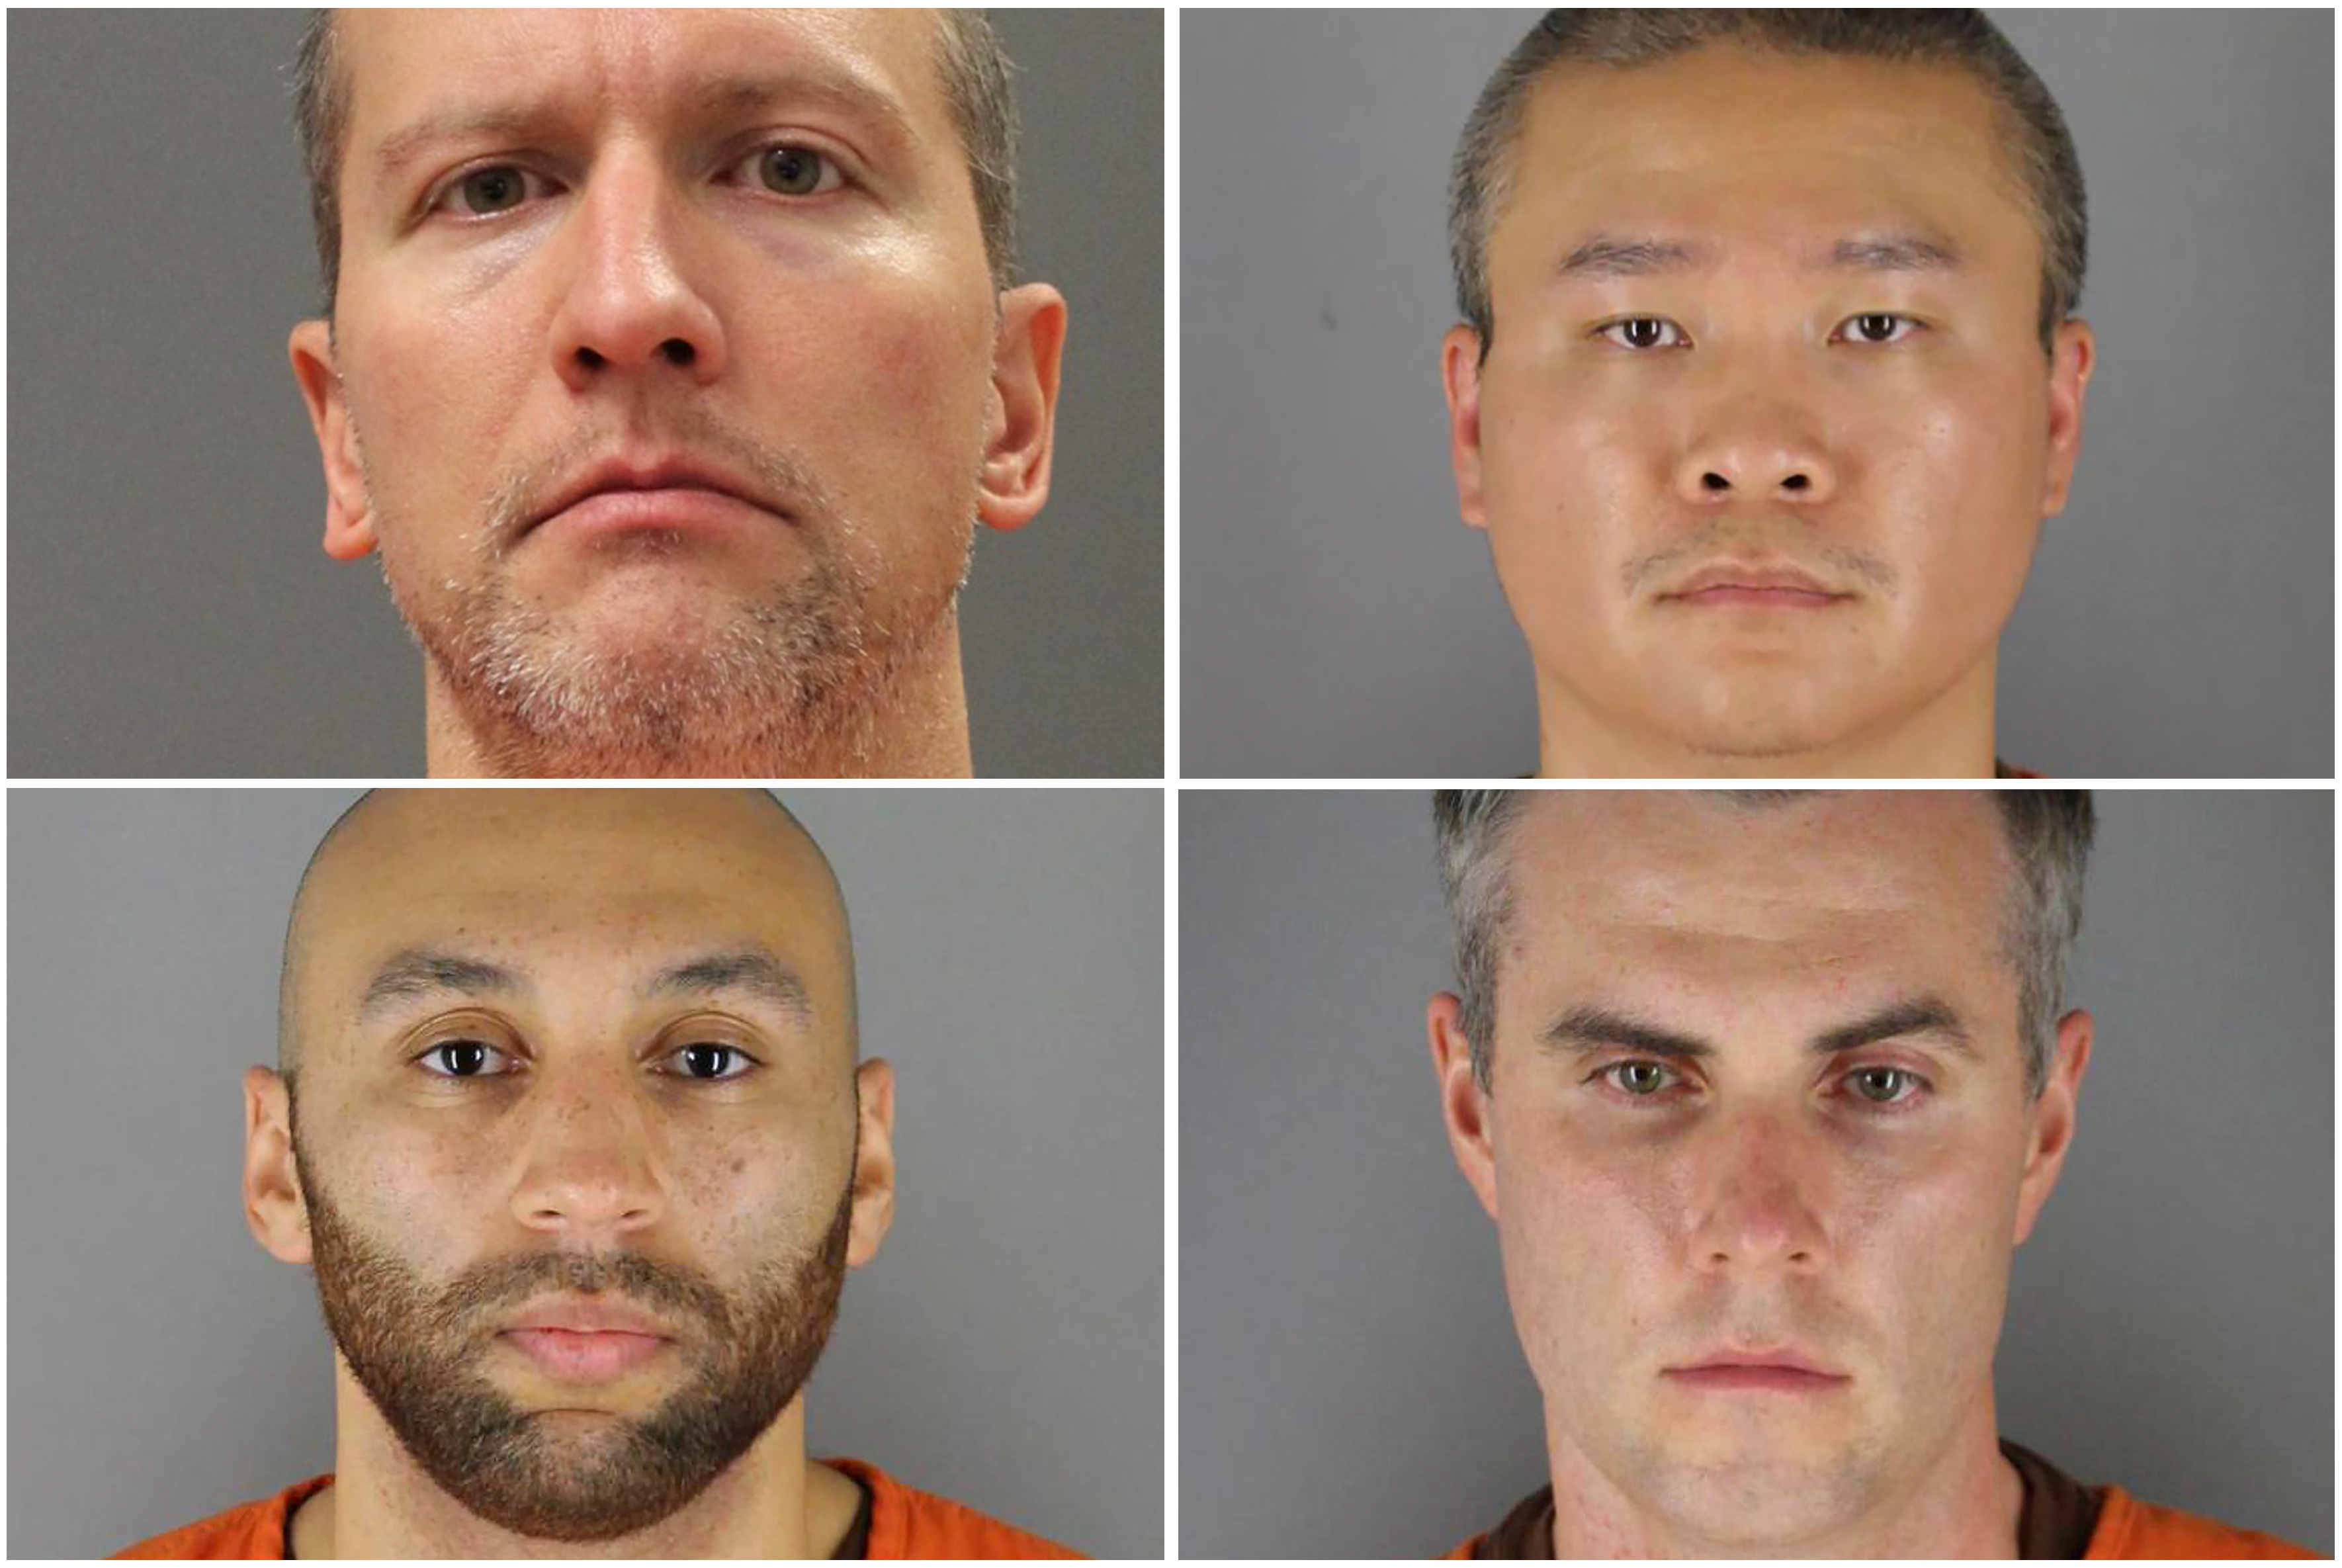 Former Minneapolis police officers (clockwise from top left) Derek Chauvin, Tou Thao, Thomas Lane and J. Alexander Kueng poses in a combination of booking photographs from the Minnesota Department of Corrections and Hennepin County Jail in Minneapolis, Minnesota, U.S.  Minnesota Department of Corrections and Hennepin County Sheriff's Office/Handout via REUTERS/File Photo